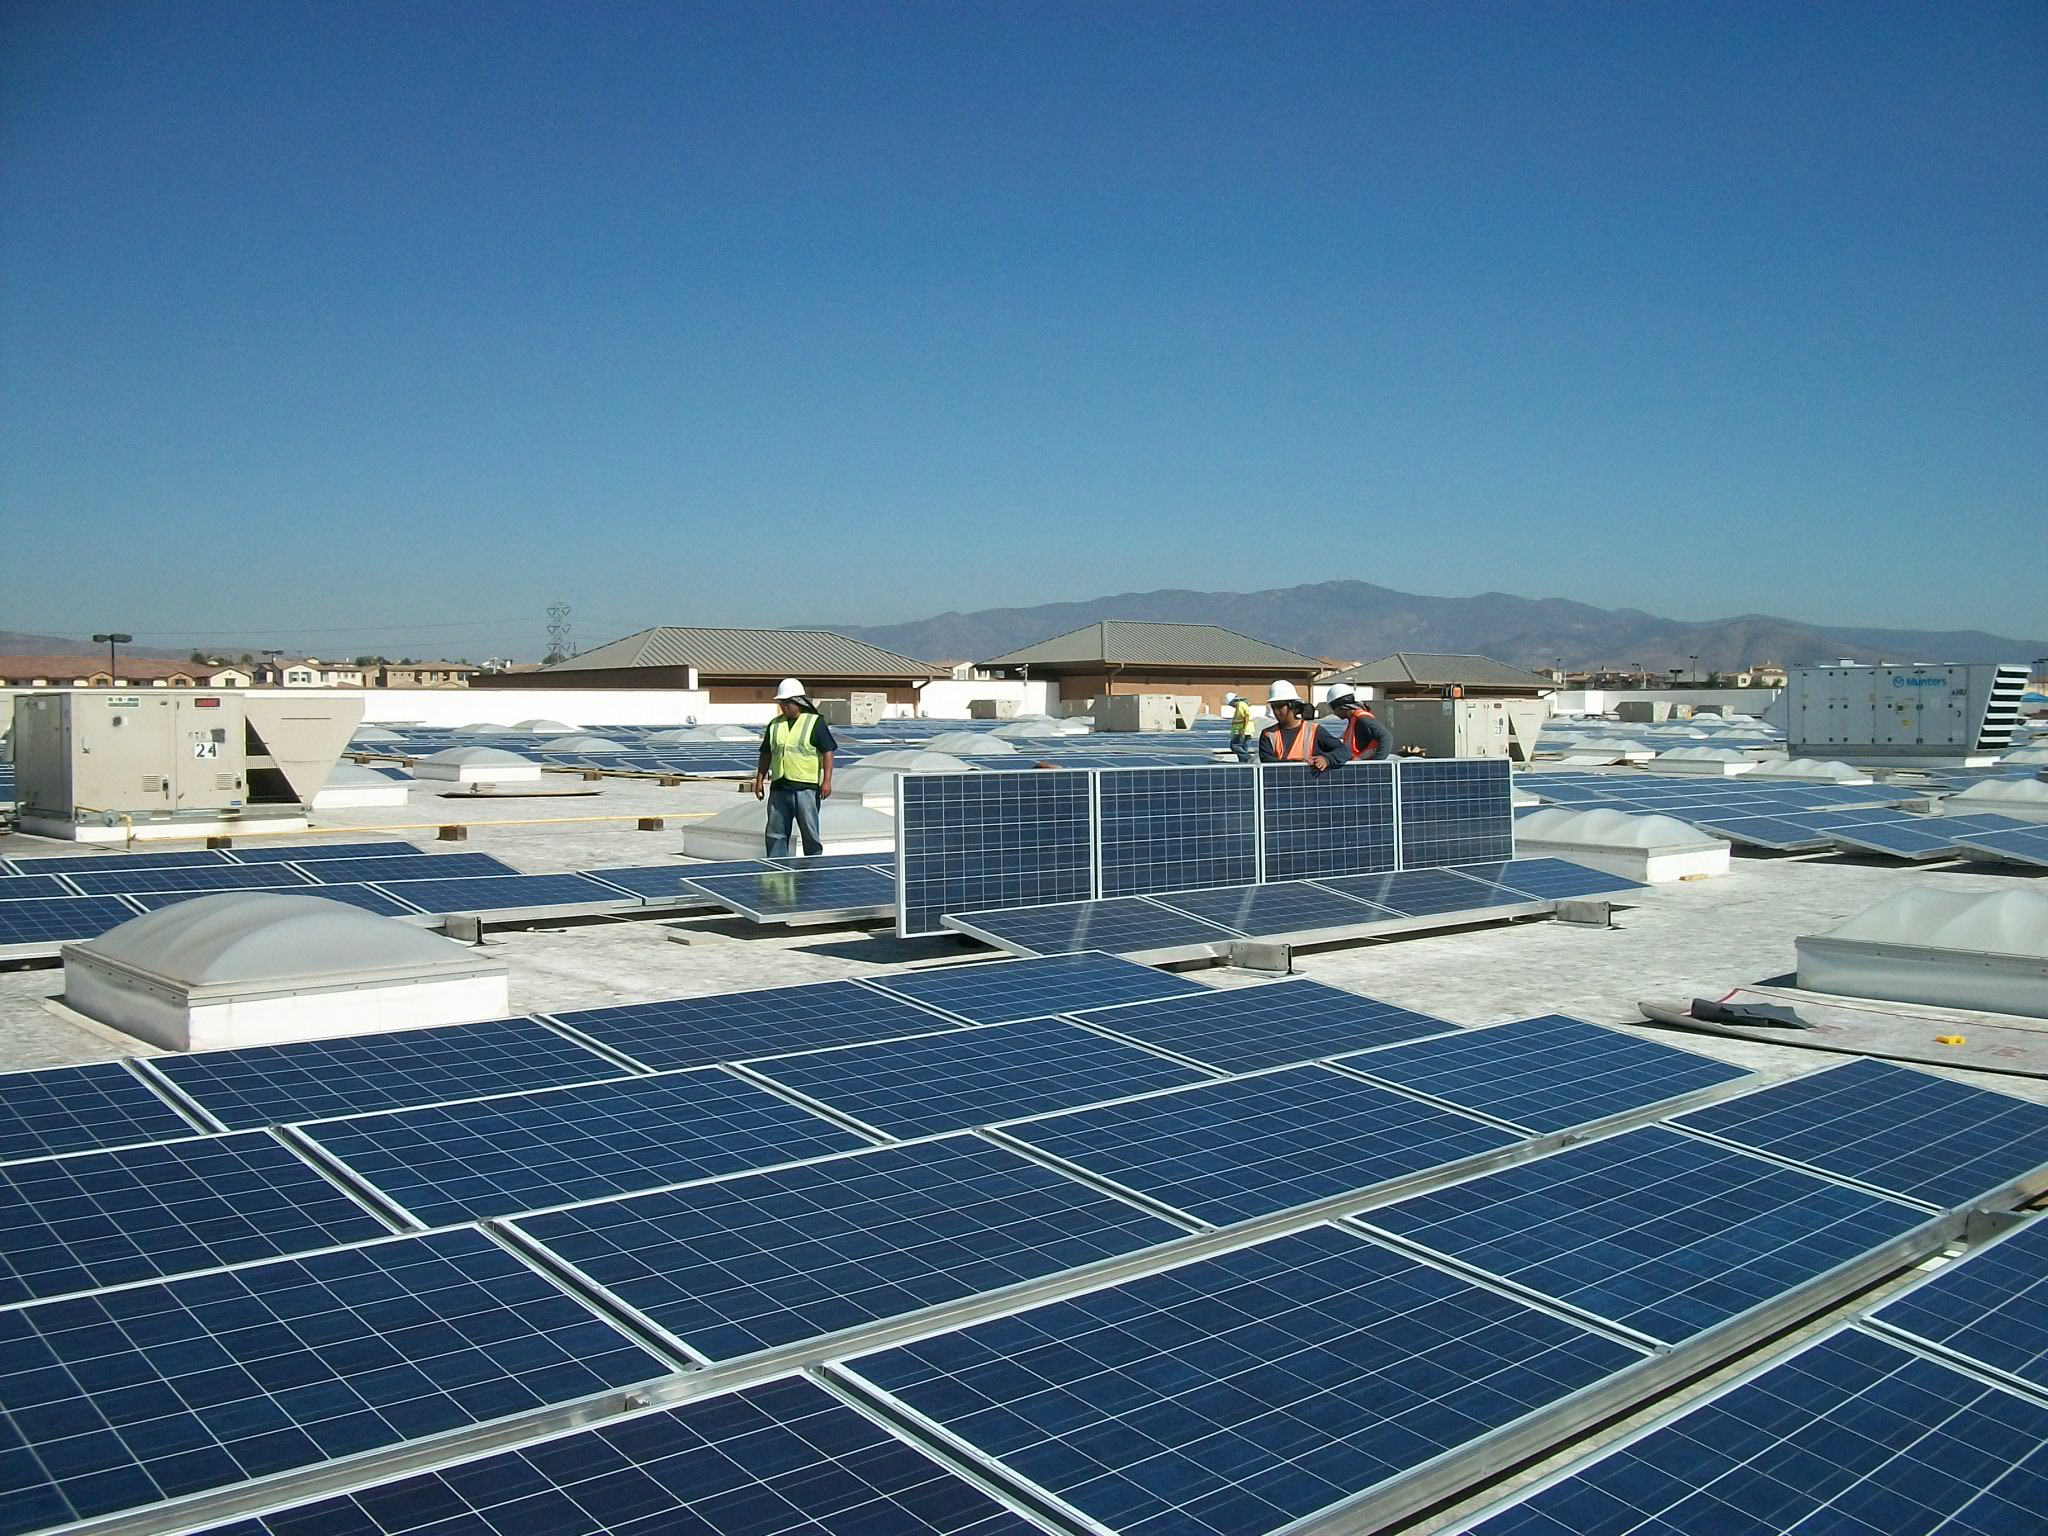 Workers installing solar panels on the roof of Walmart in Chula Vista, Calif.